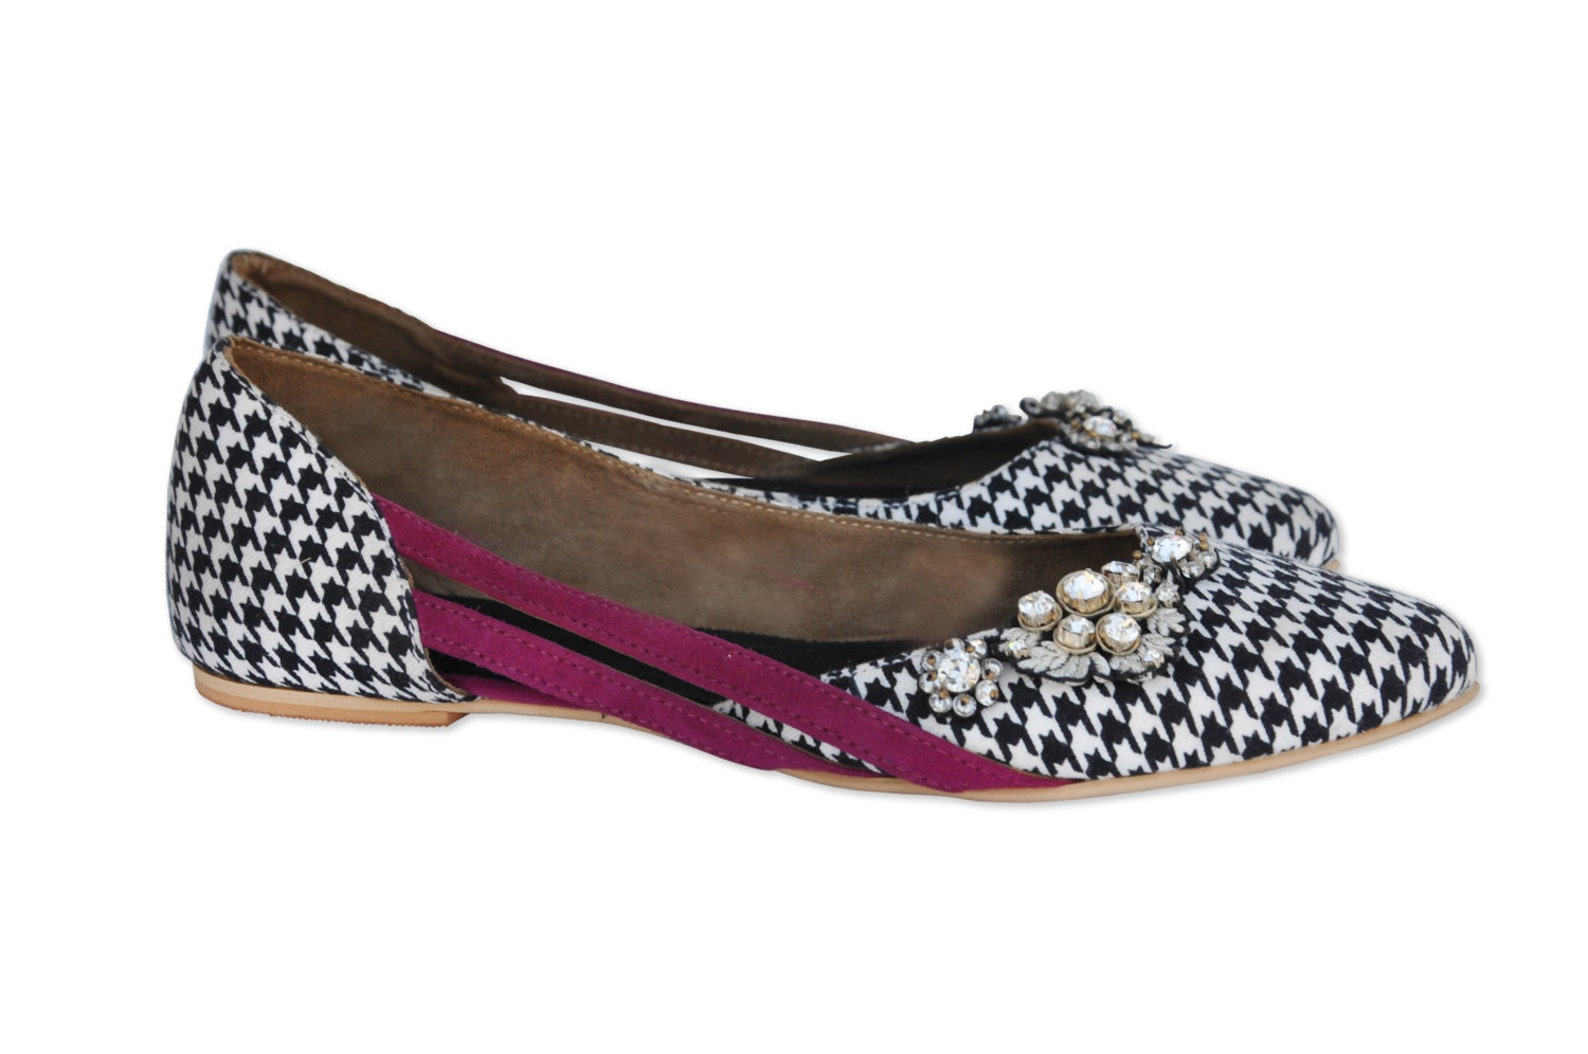 classic flats, bohemian ballet shoes, pointed toe shoe, womens shoes, houndstooth ballerina shoes, hand embroidered ballerina fl